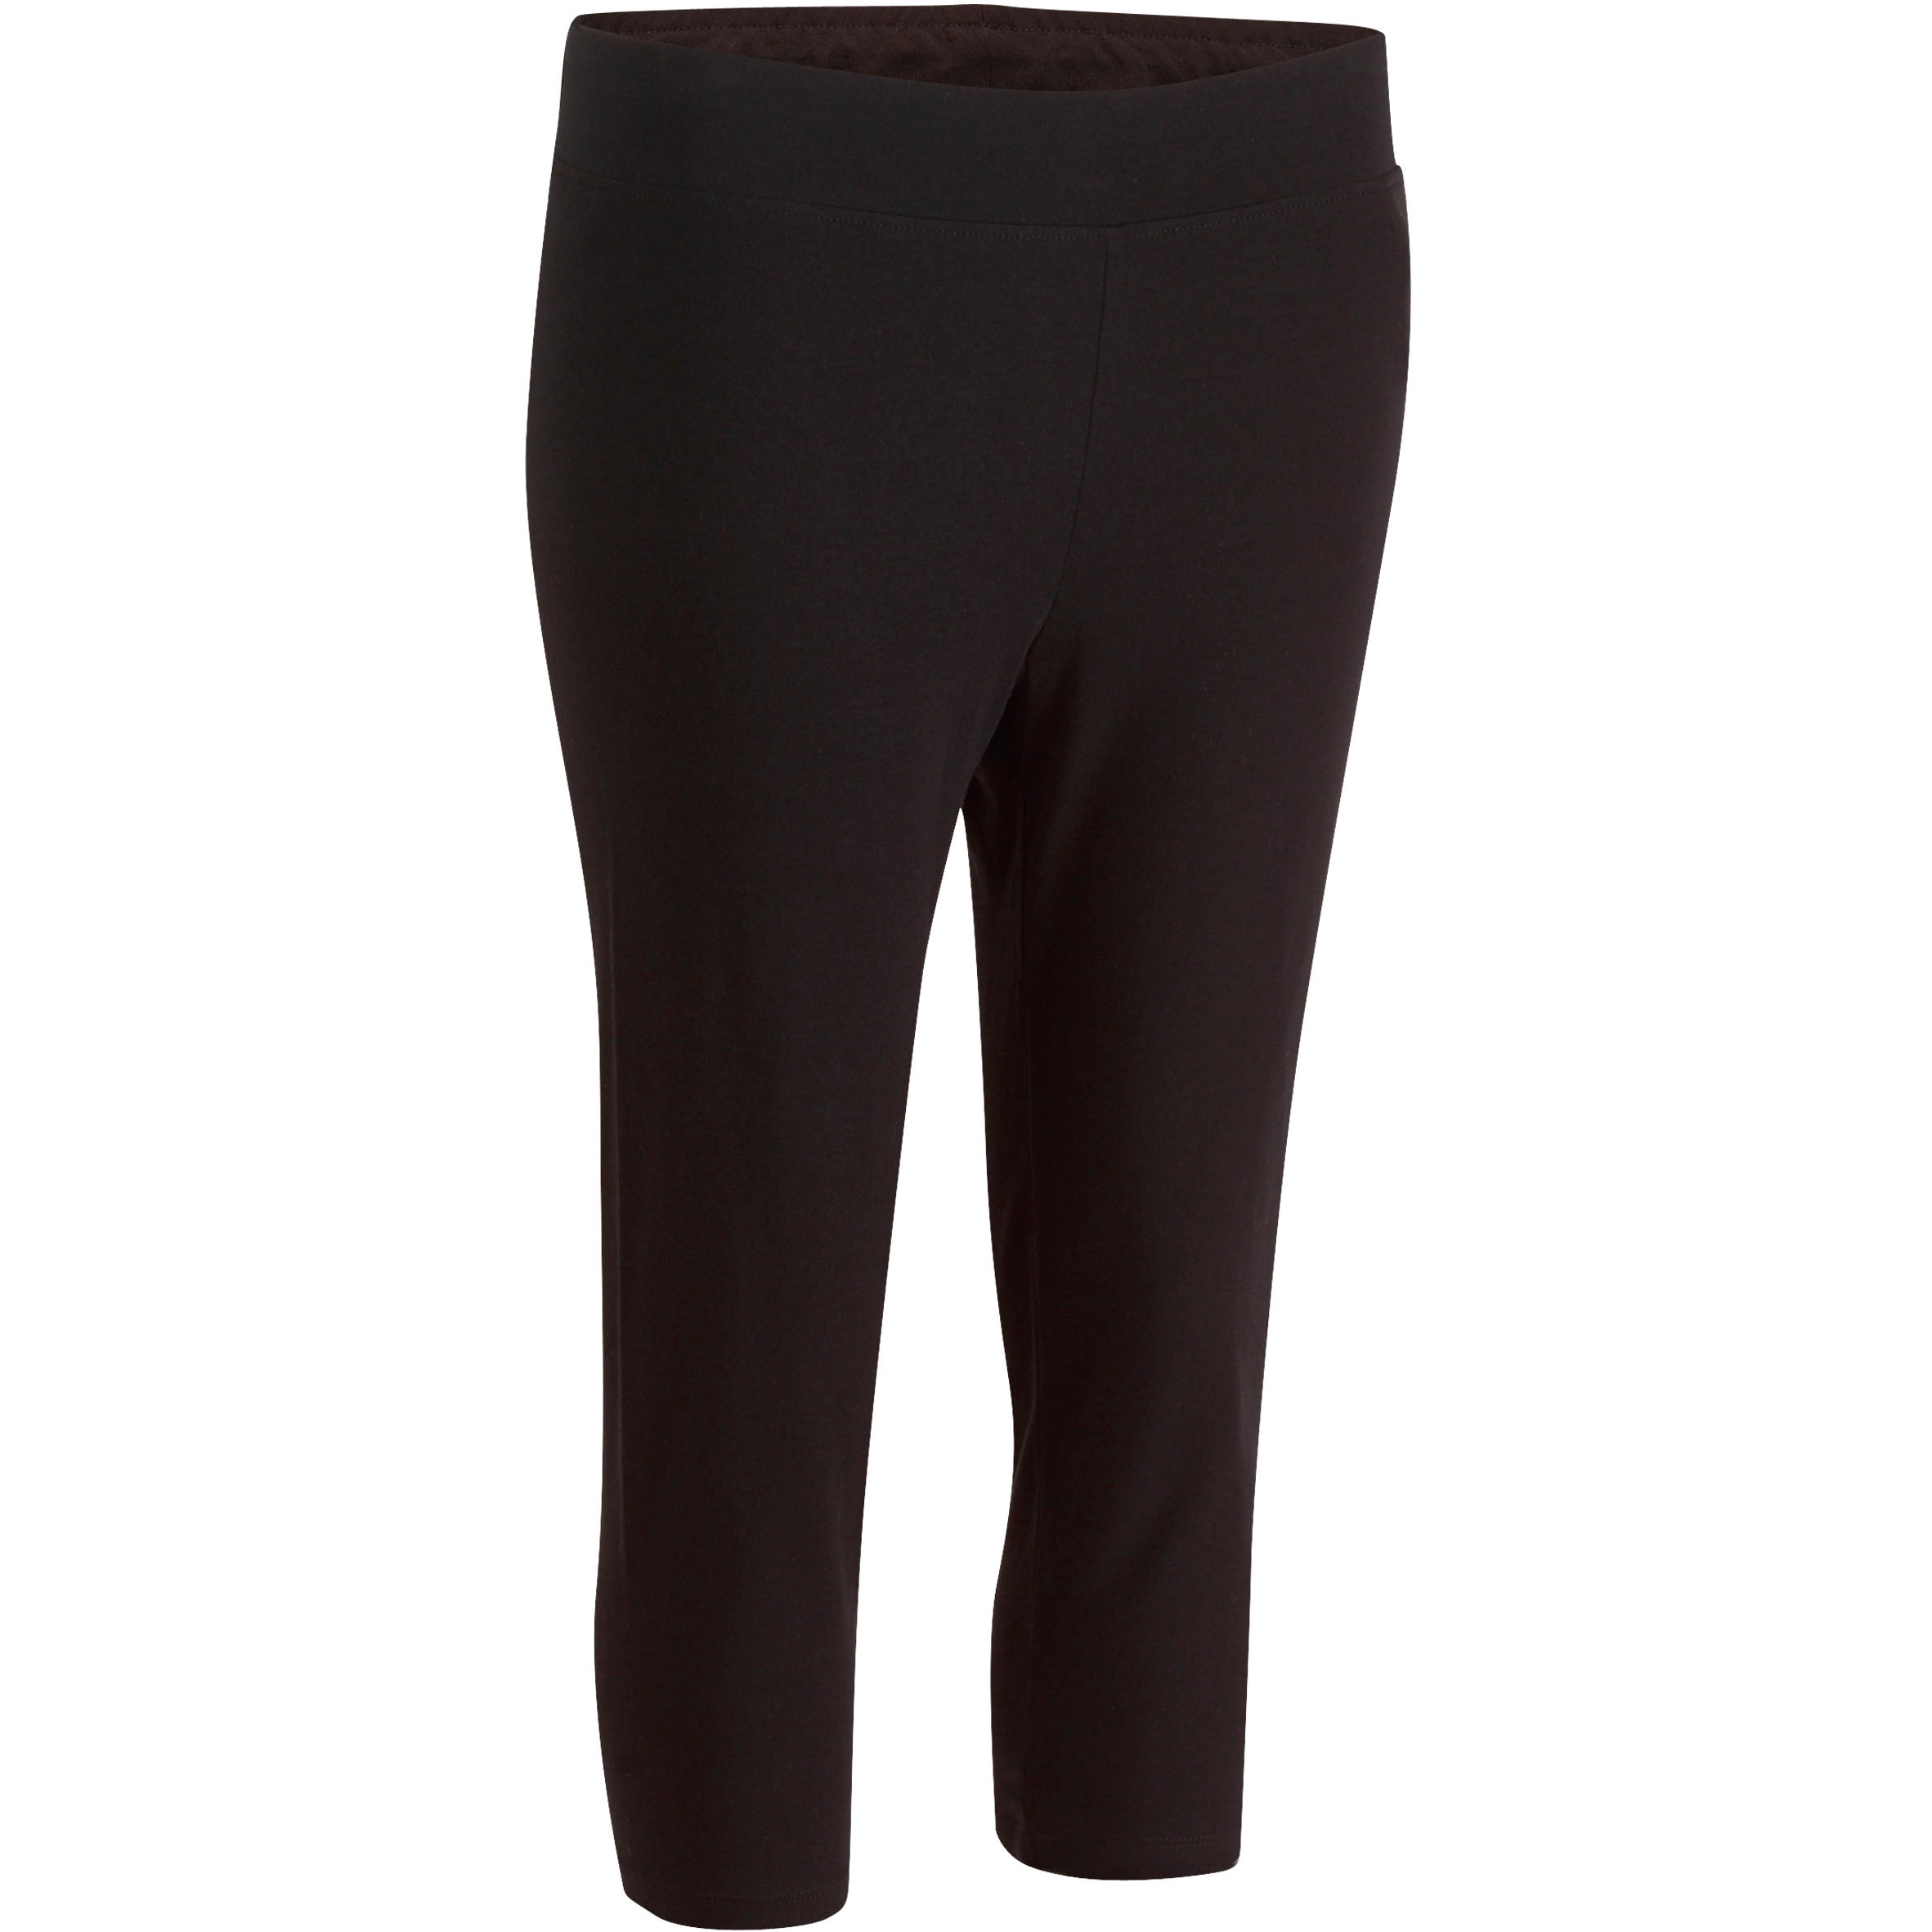 Fit+ Women's Slim-Fit Gym & Pilates Cropped Bottoms - Hitam